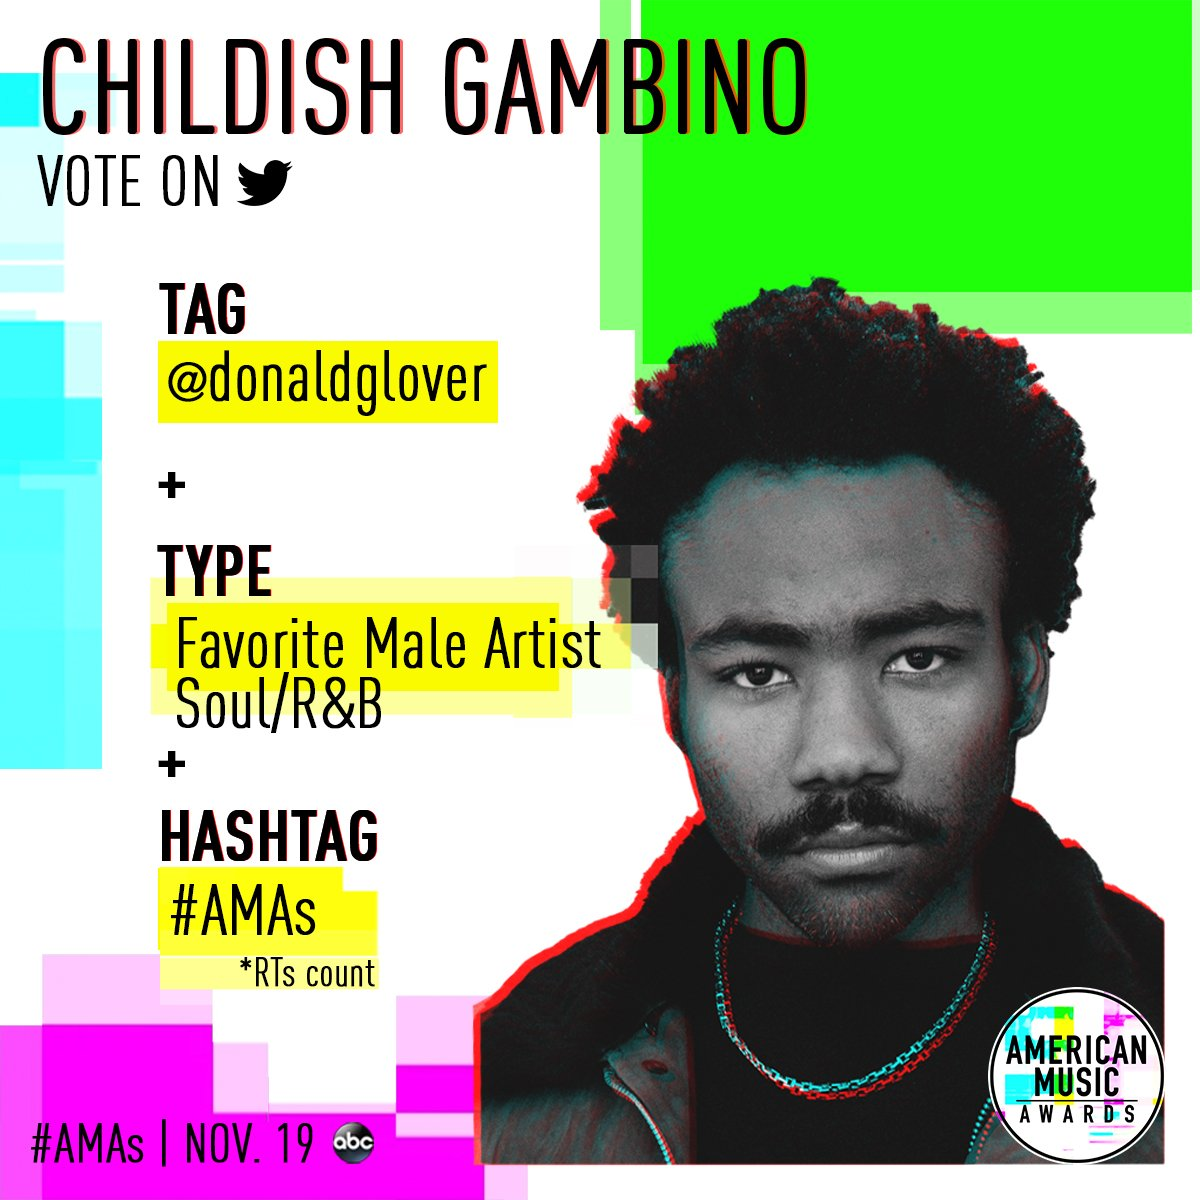 RT to vote for @donaldglover for Favorite Male Artist Soul/R&B at the #AMAs! ��➡️ https://t.co/CwV2pR8OnJ https://t.co/0nXQZZU0cN